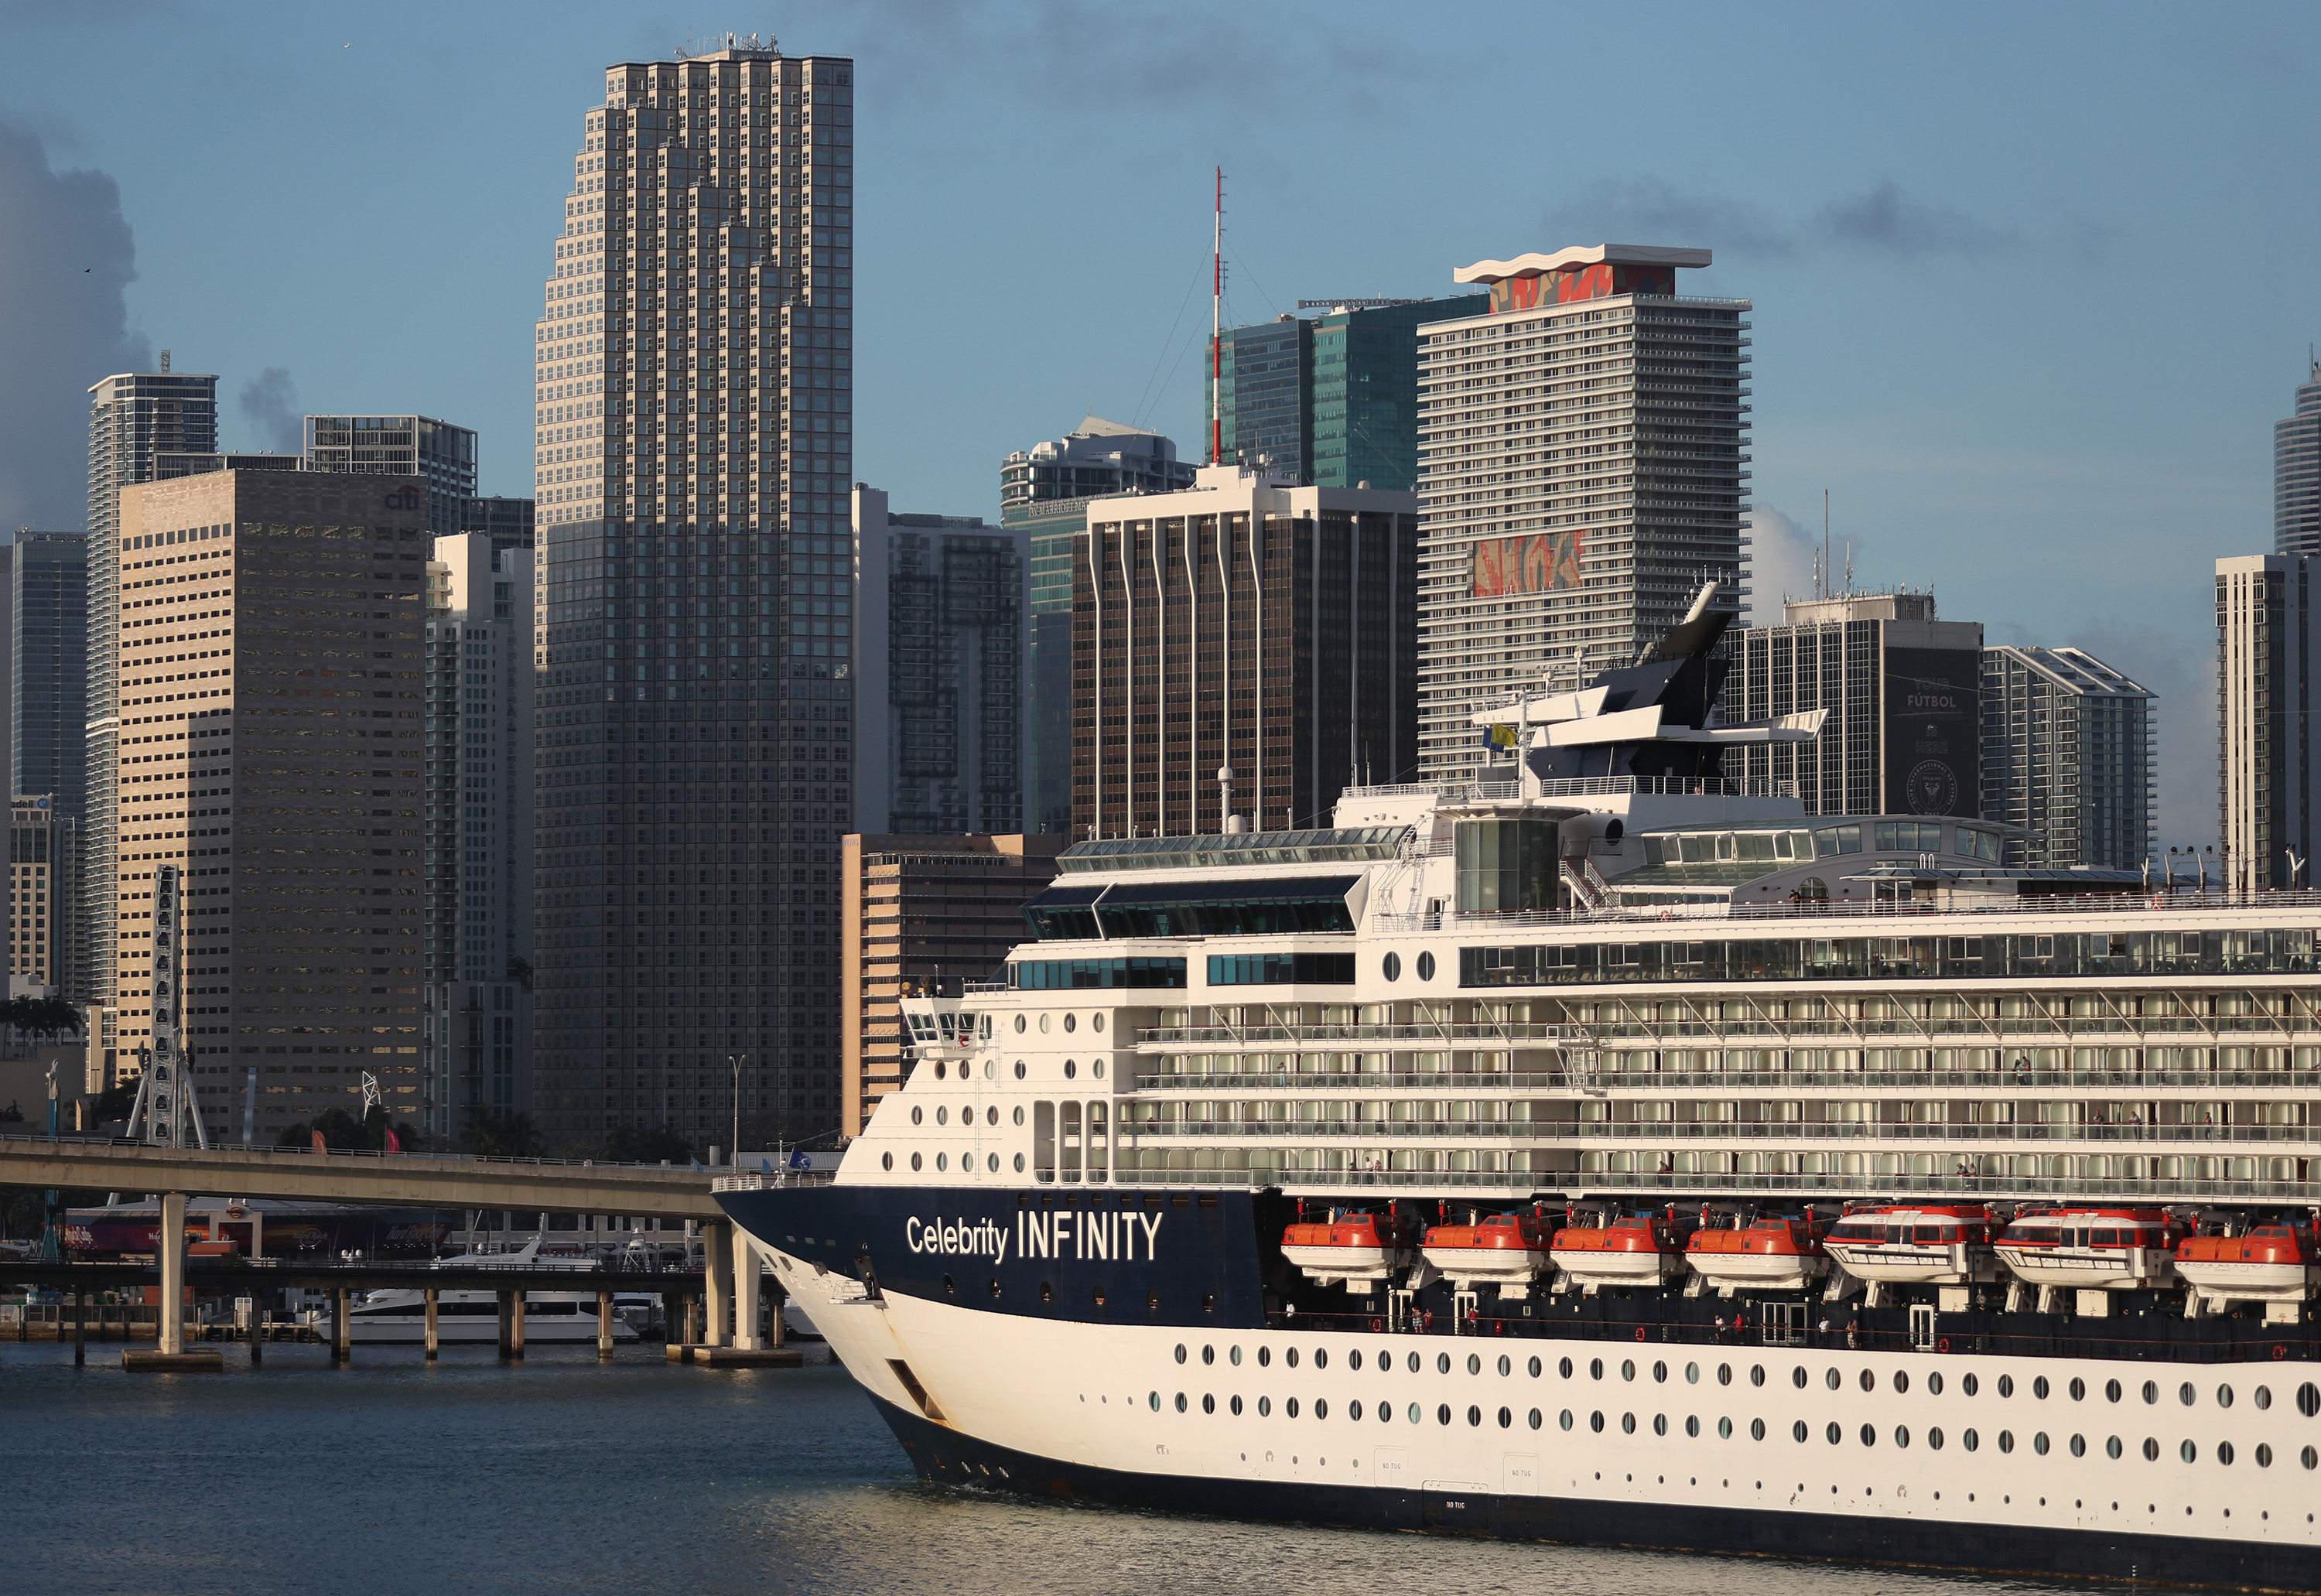 Crew member aboard Celebrity Infinity raises concerns over whether cruise ship unnecessarily put crew at risk